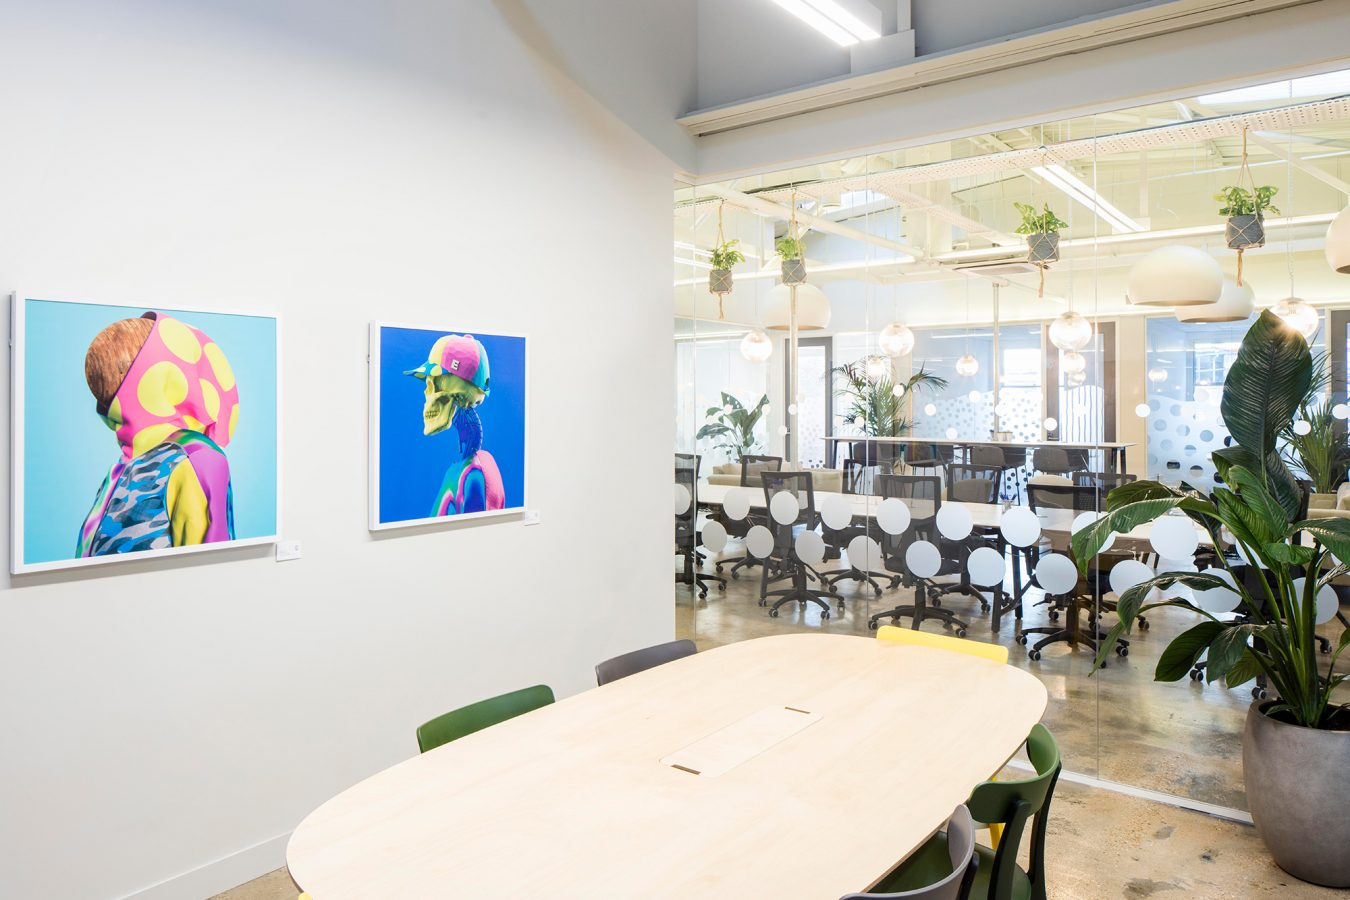 Meeting room wall decoration and pop culture prints in Finsbury Park